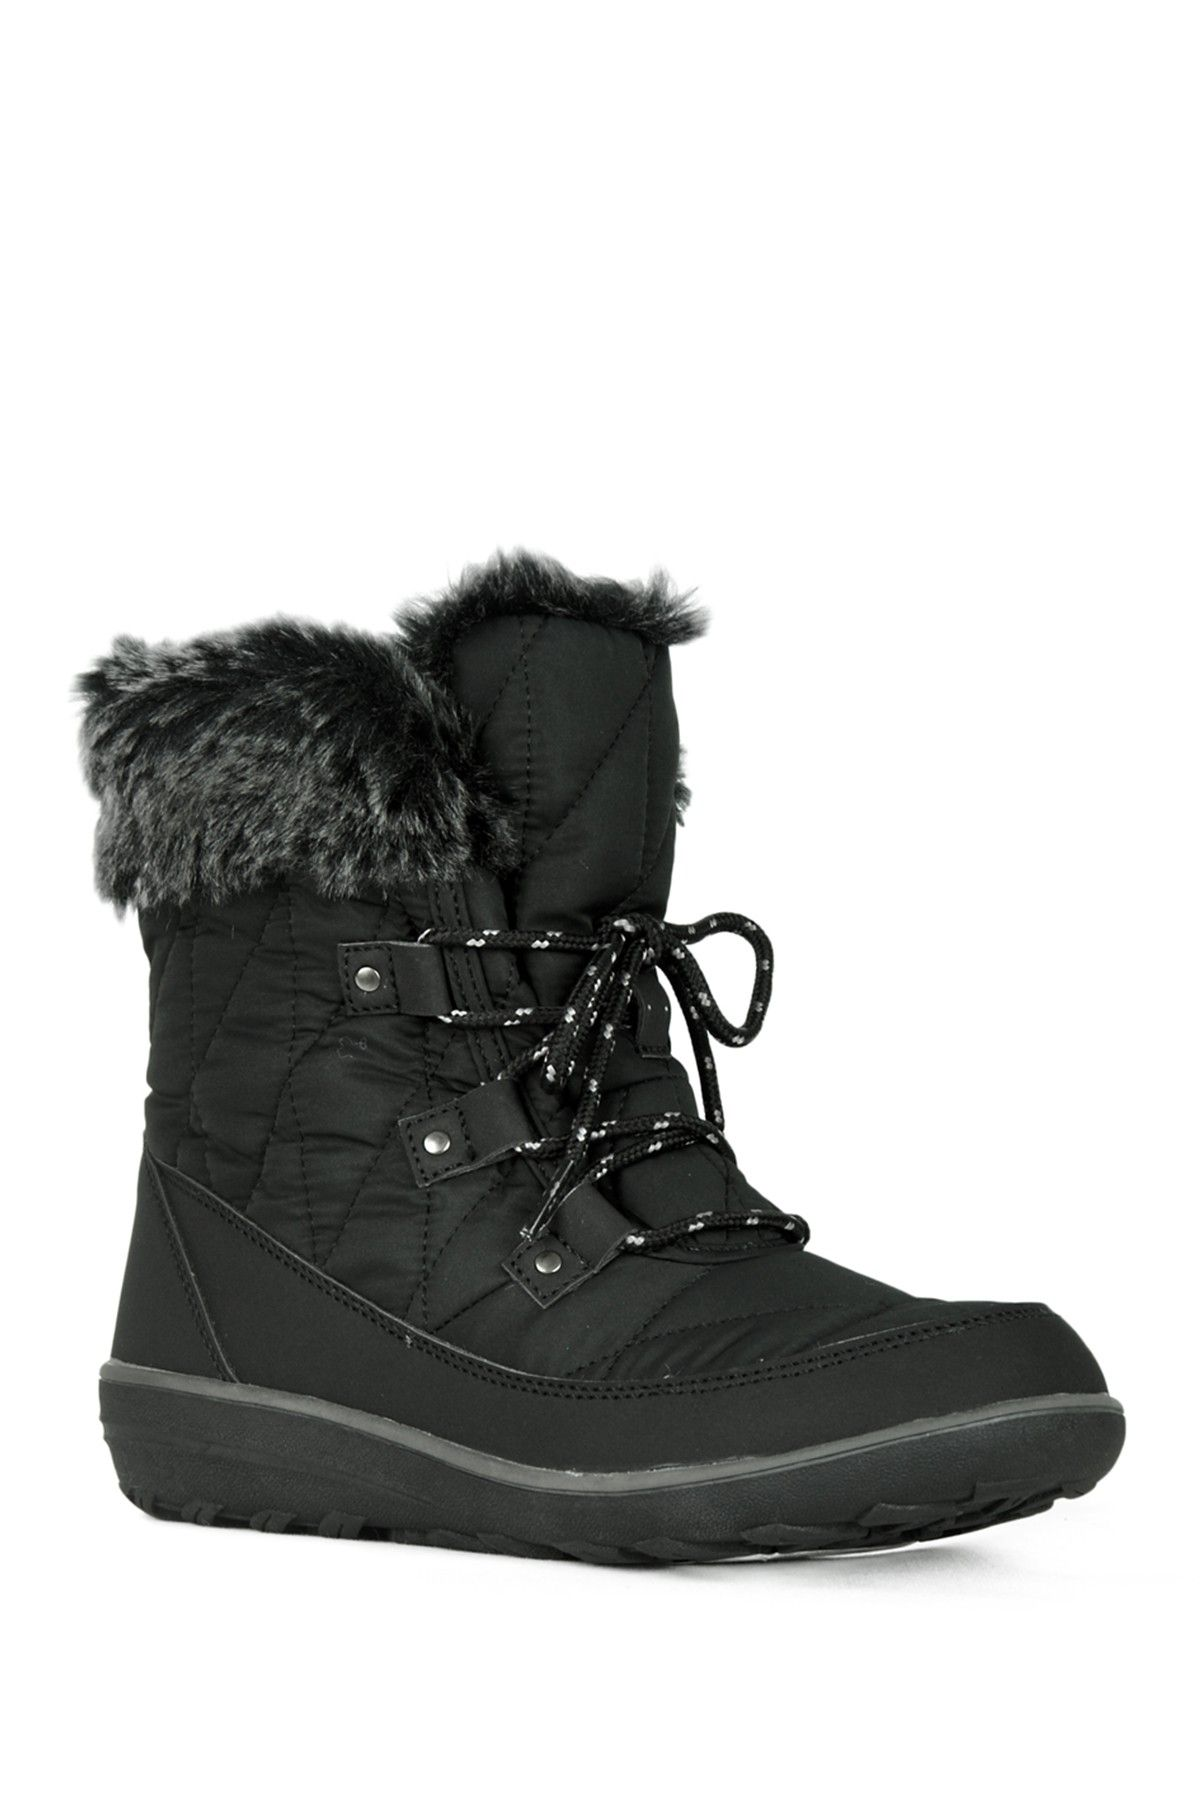 Refresh Hike Faux Fur Trim LaceUp Ankle Boot Lace up